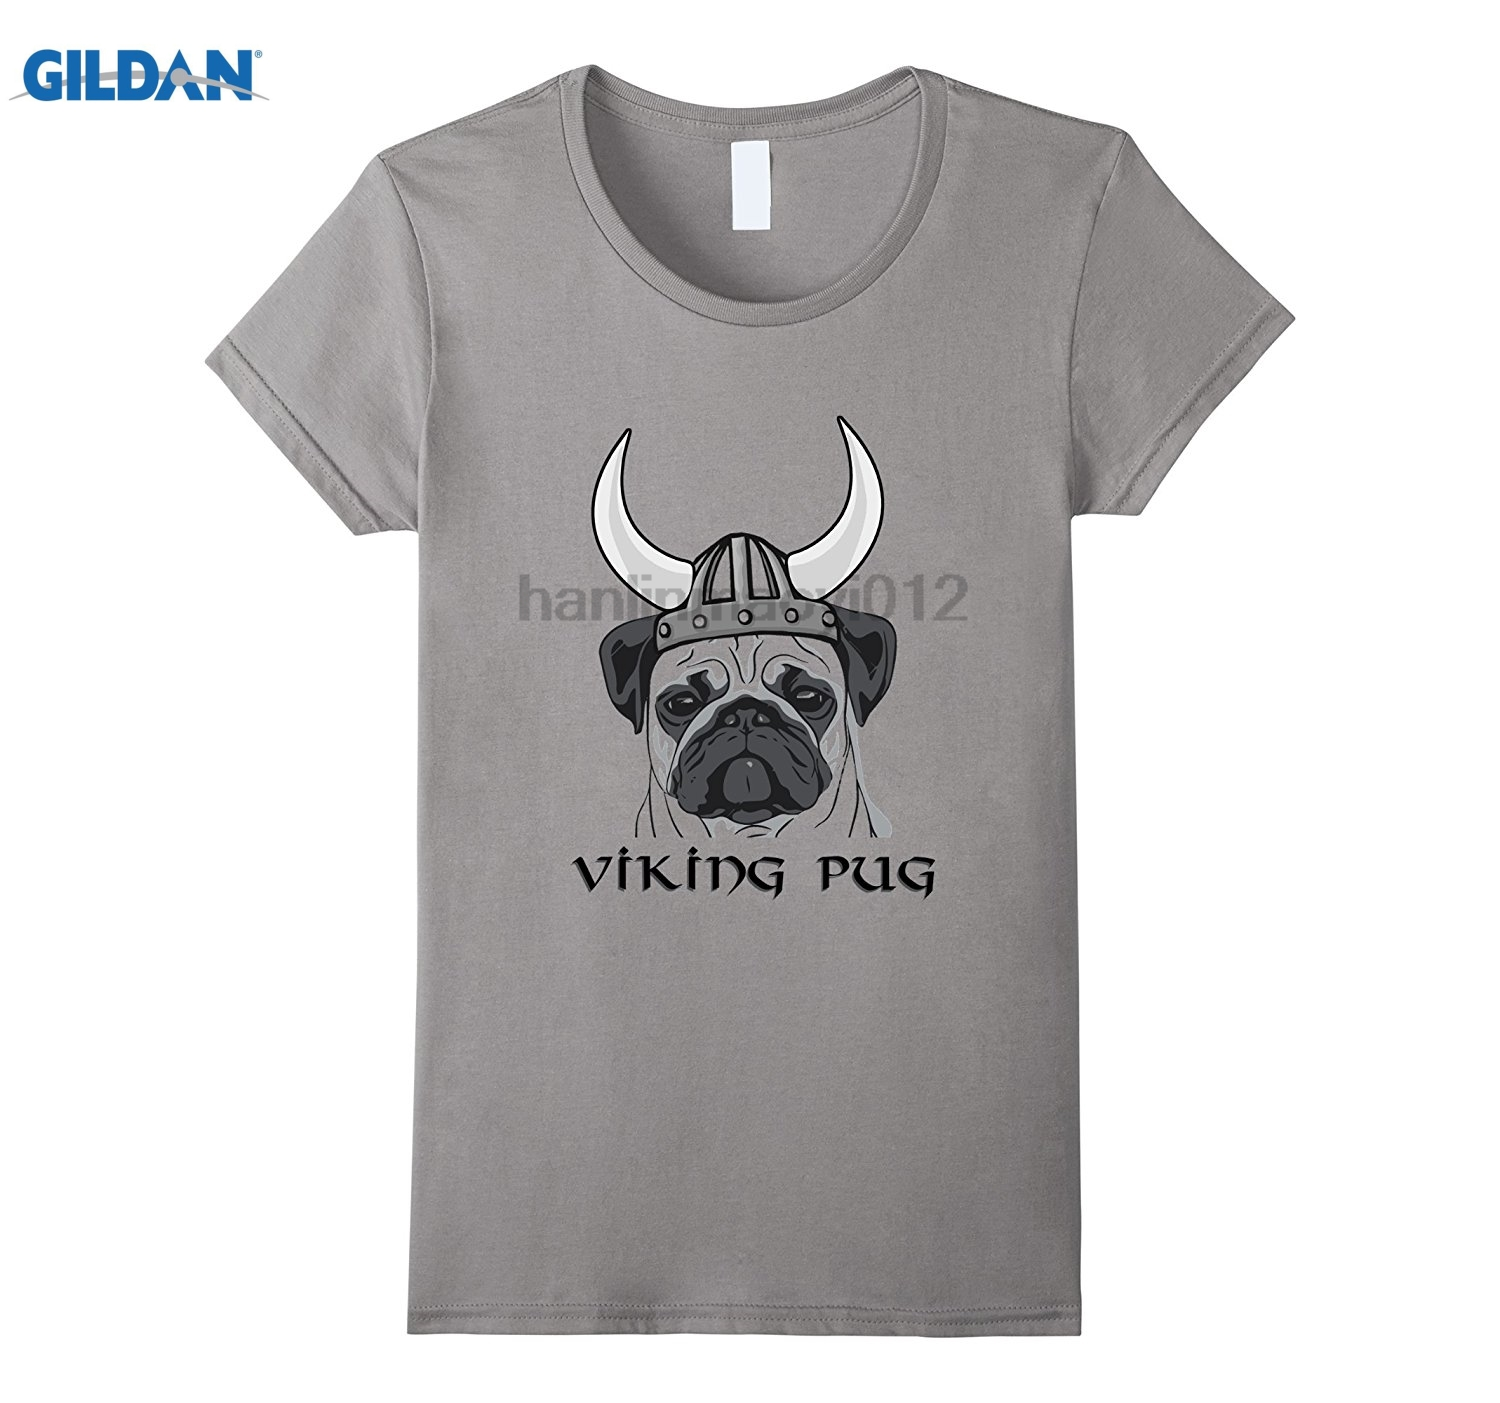 GILDAN Viking Pug T-Shirt - Funny, Cute, Dog Lovers, Breeds, Animal Dress female T-shirt